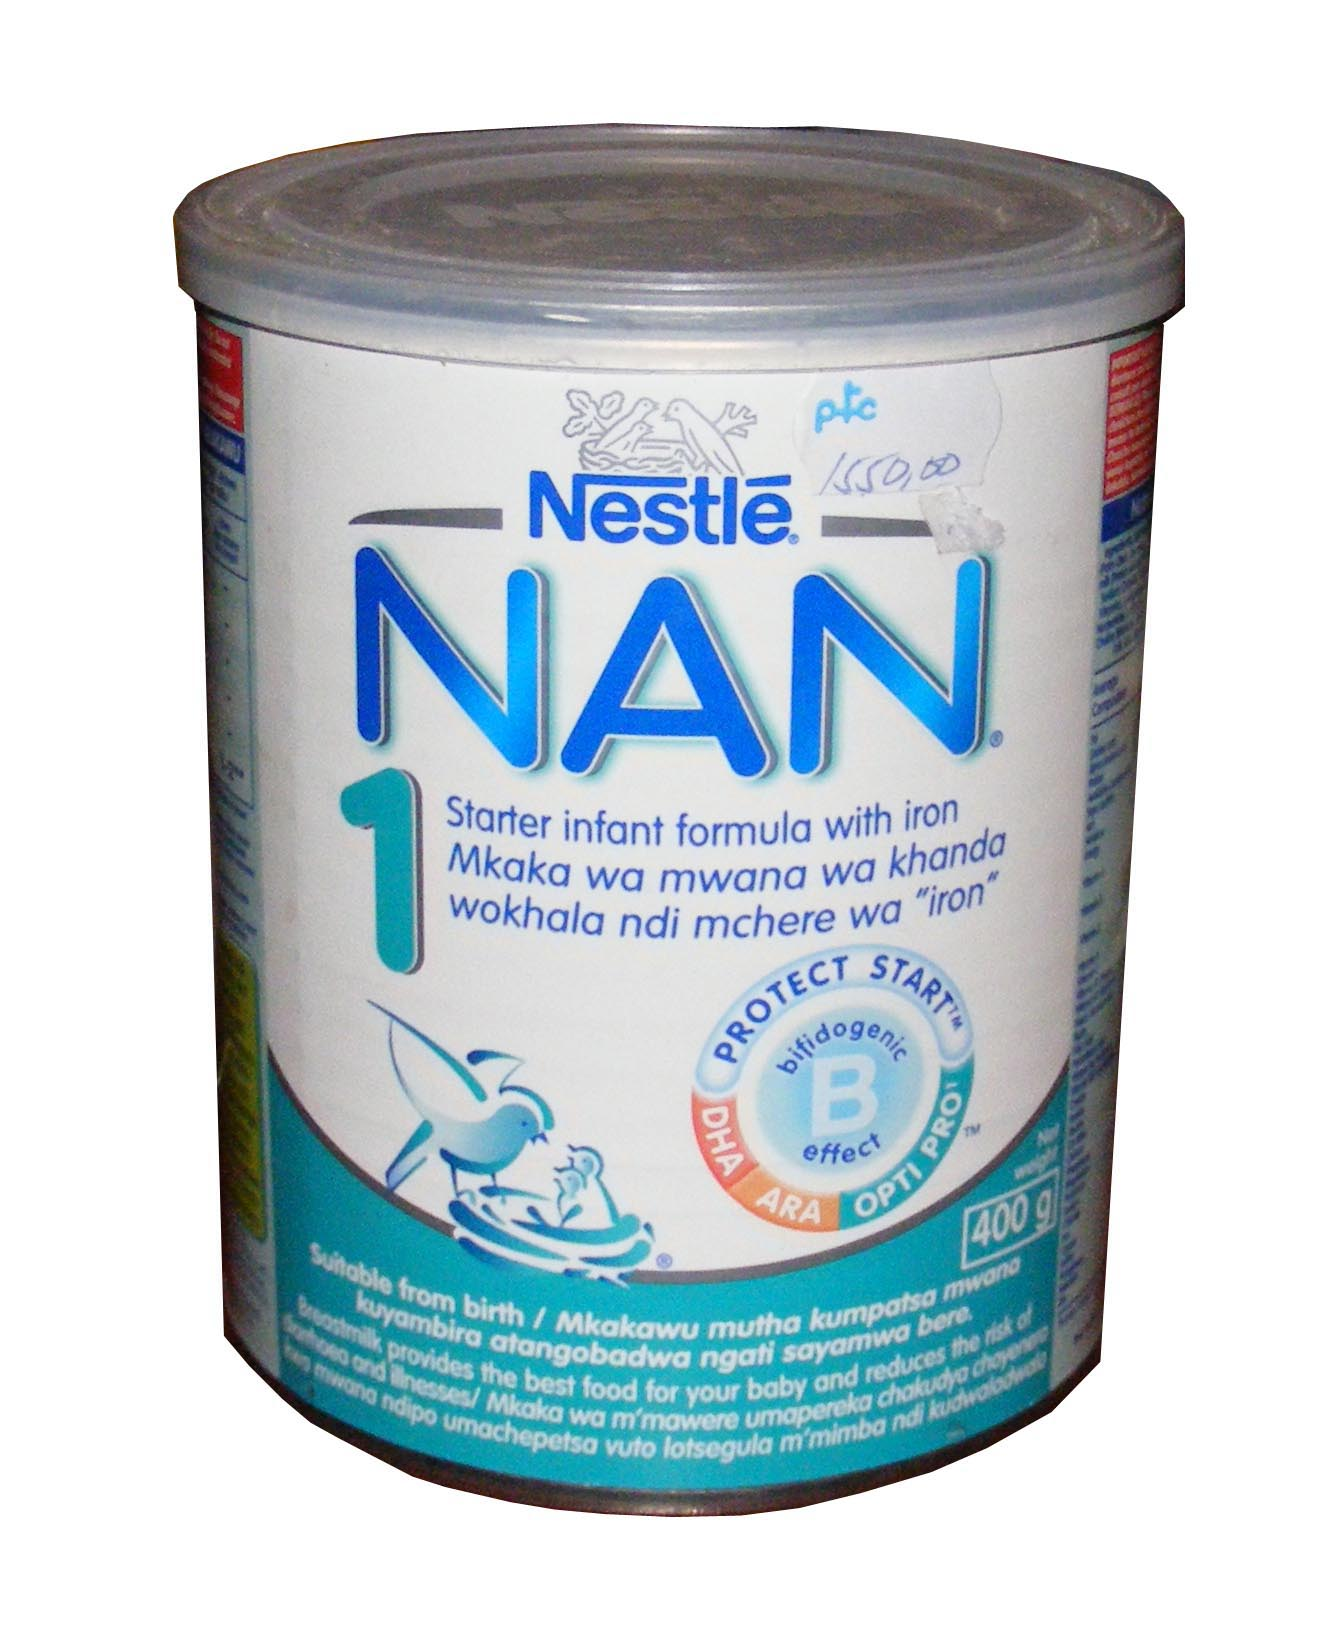 Boycott Nestle - and other action to protect infant health ...